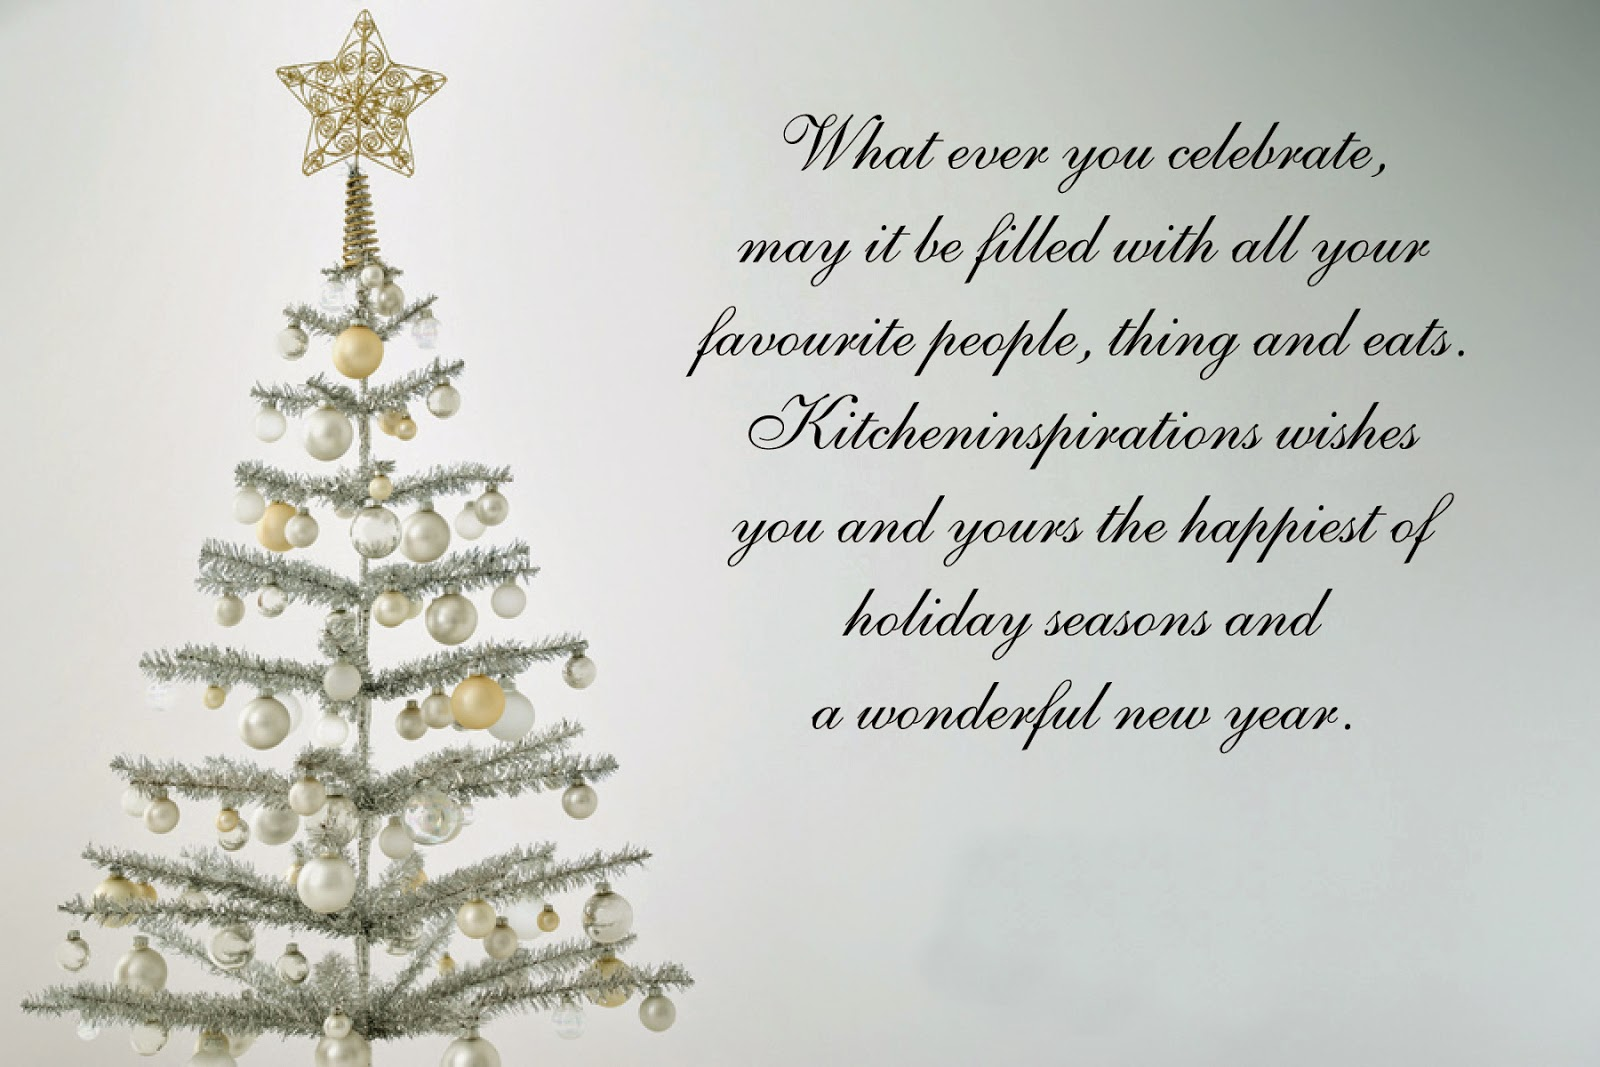 Christmas Tree Quotes Inspirational : Silver Christmas Tree Quotes